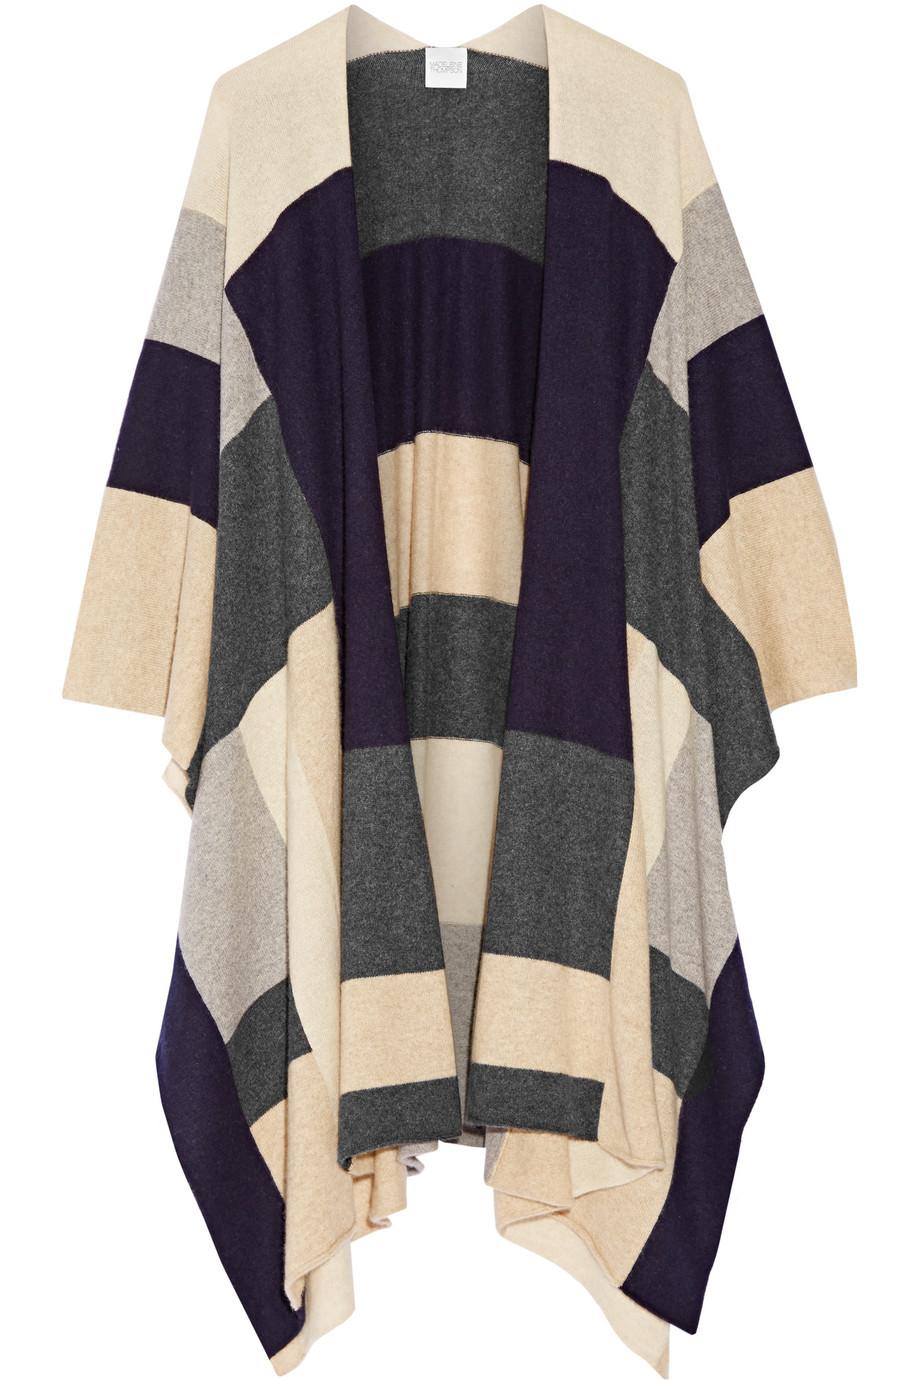 Color-Block Cashmere Wrap, Madeleine Thompson, Gray/Neutral, Women's